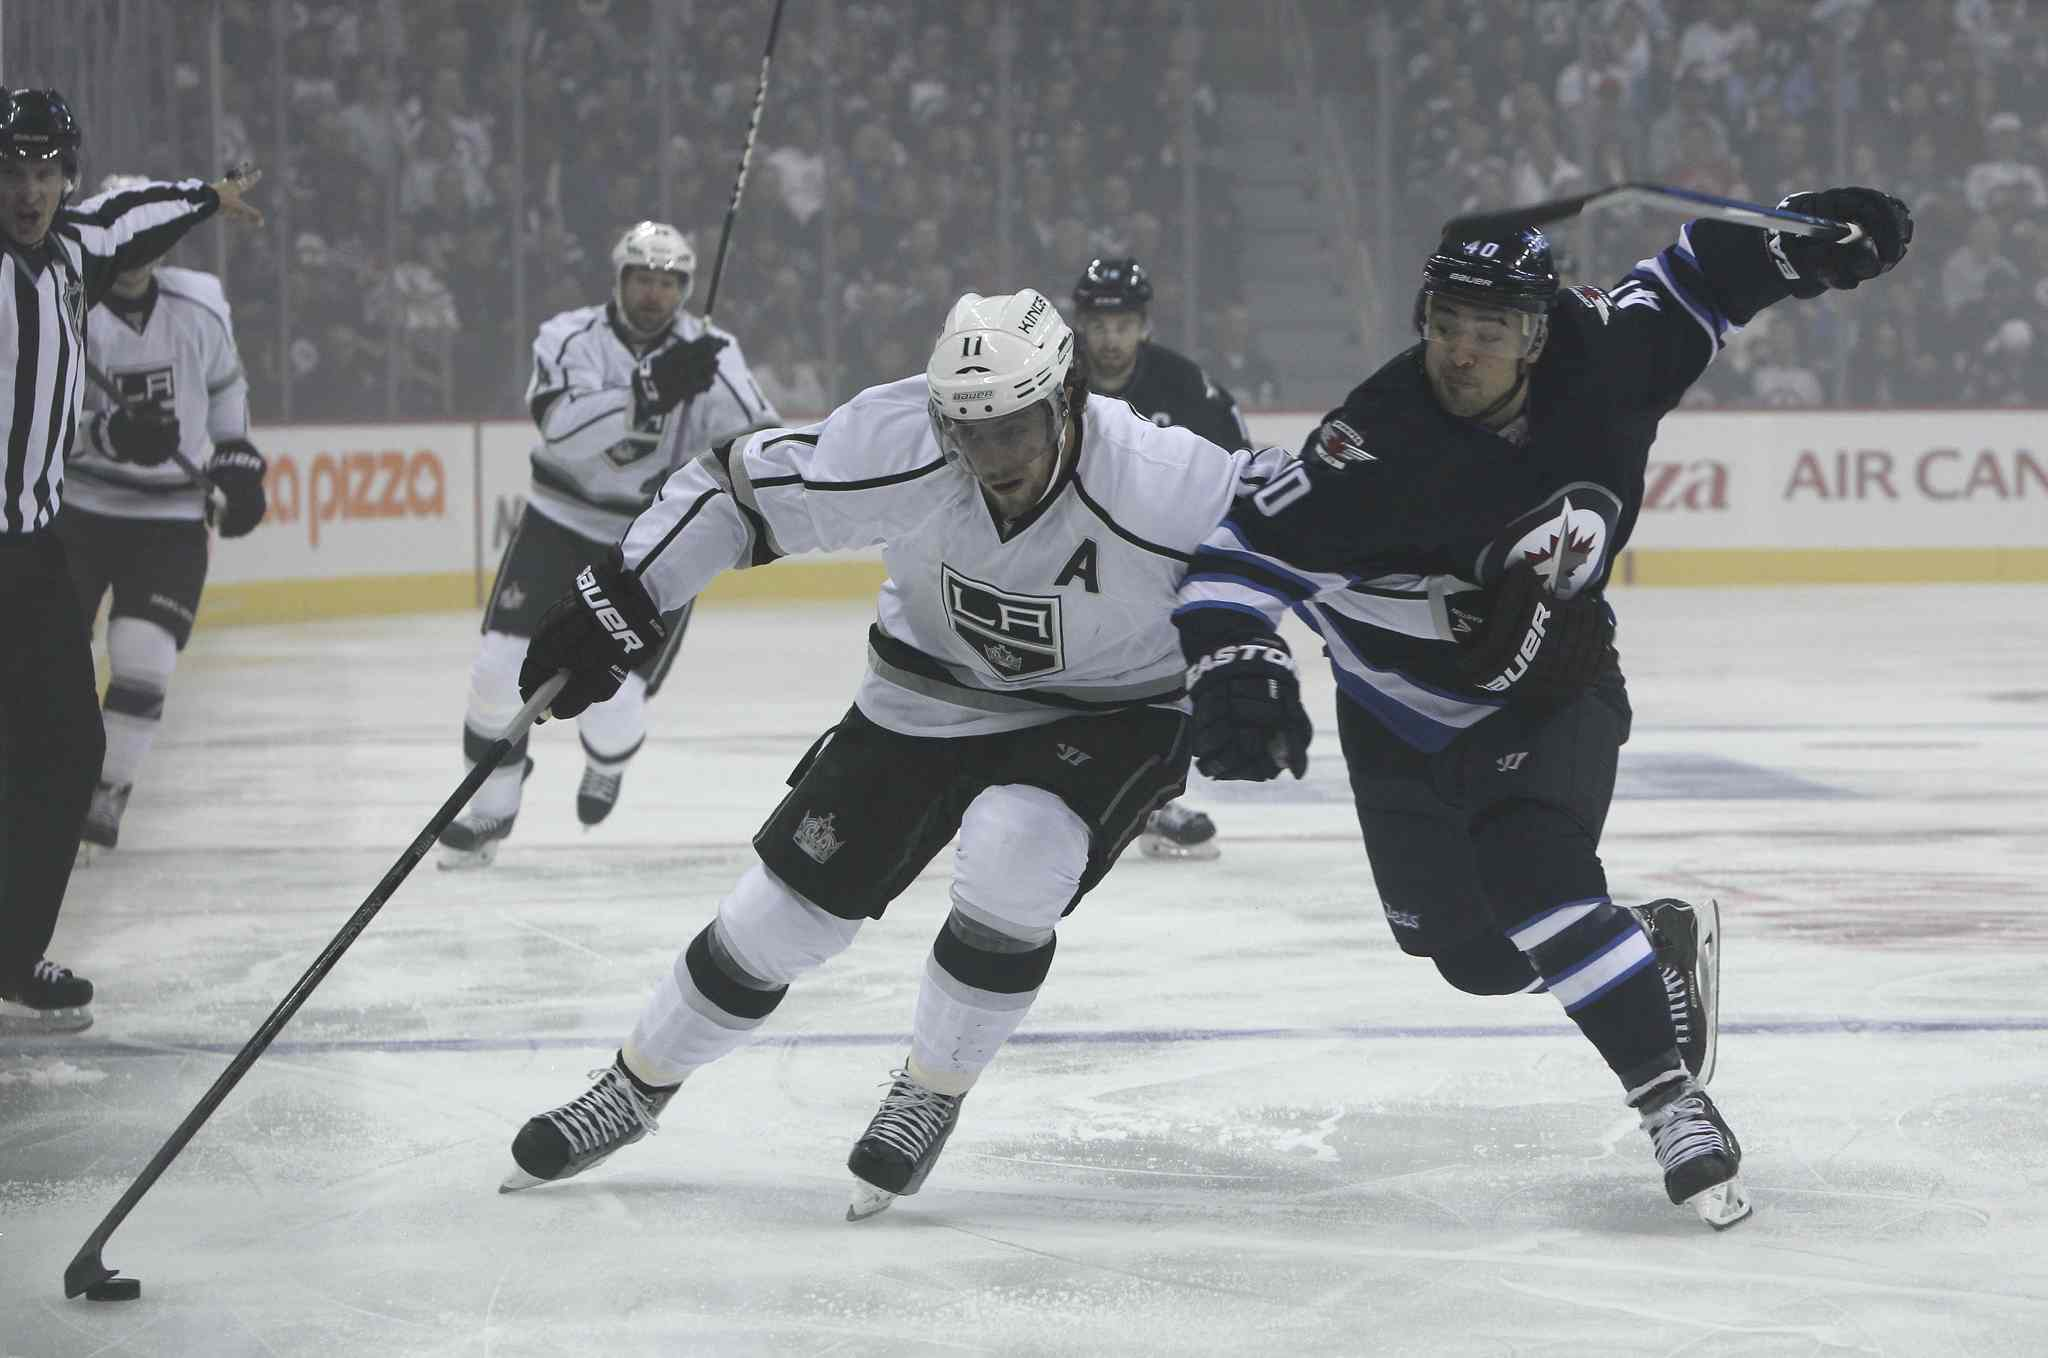 Devin Setoguchi (40) of the Winnipeg Jets tries to slow down Los Angeles Kings' Anze Kopitar (11) in the first period of Friday night's home opener at the MTS Centre.